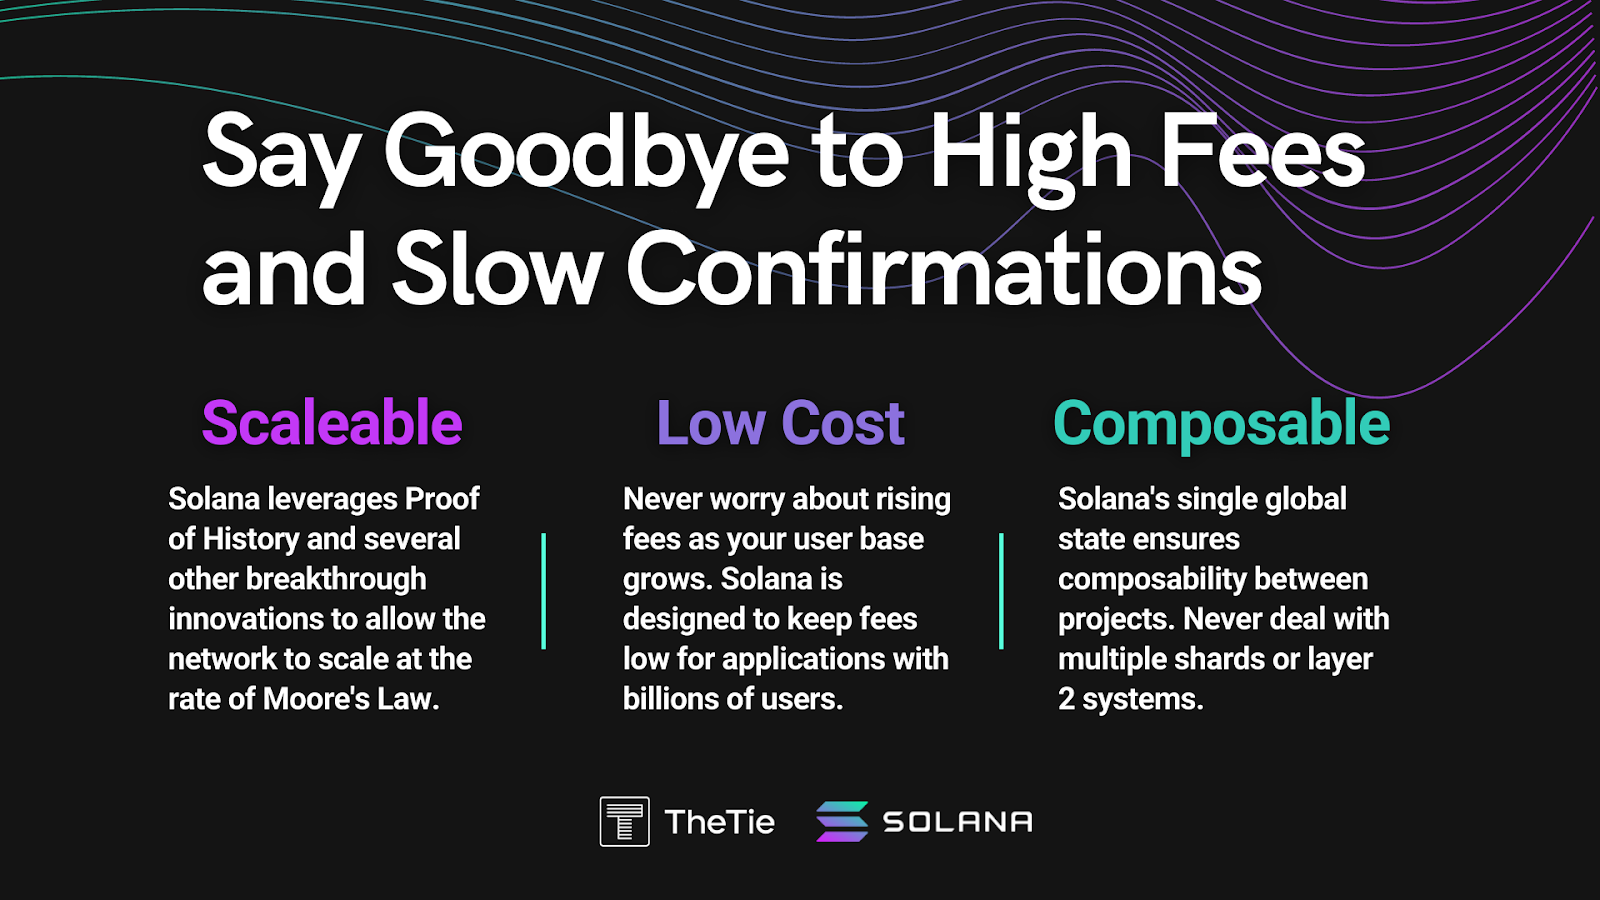 Solana is scalable, low cost, and composable